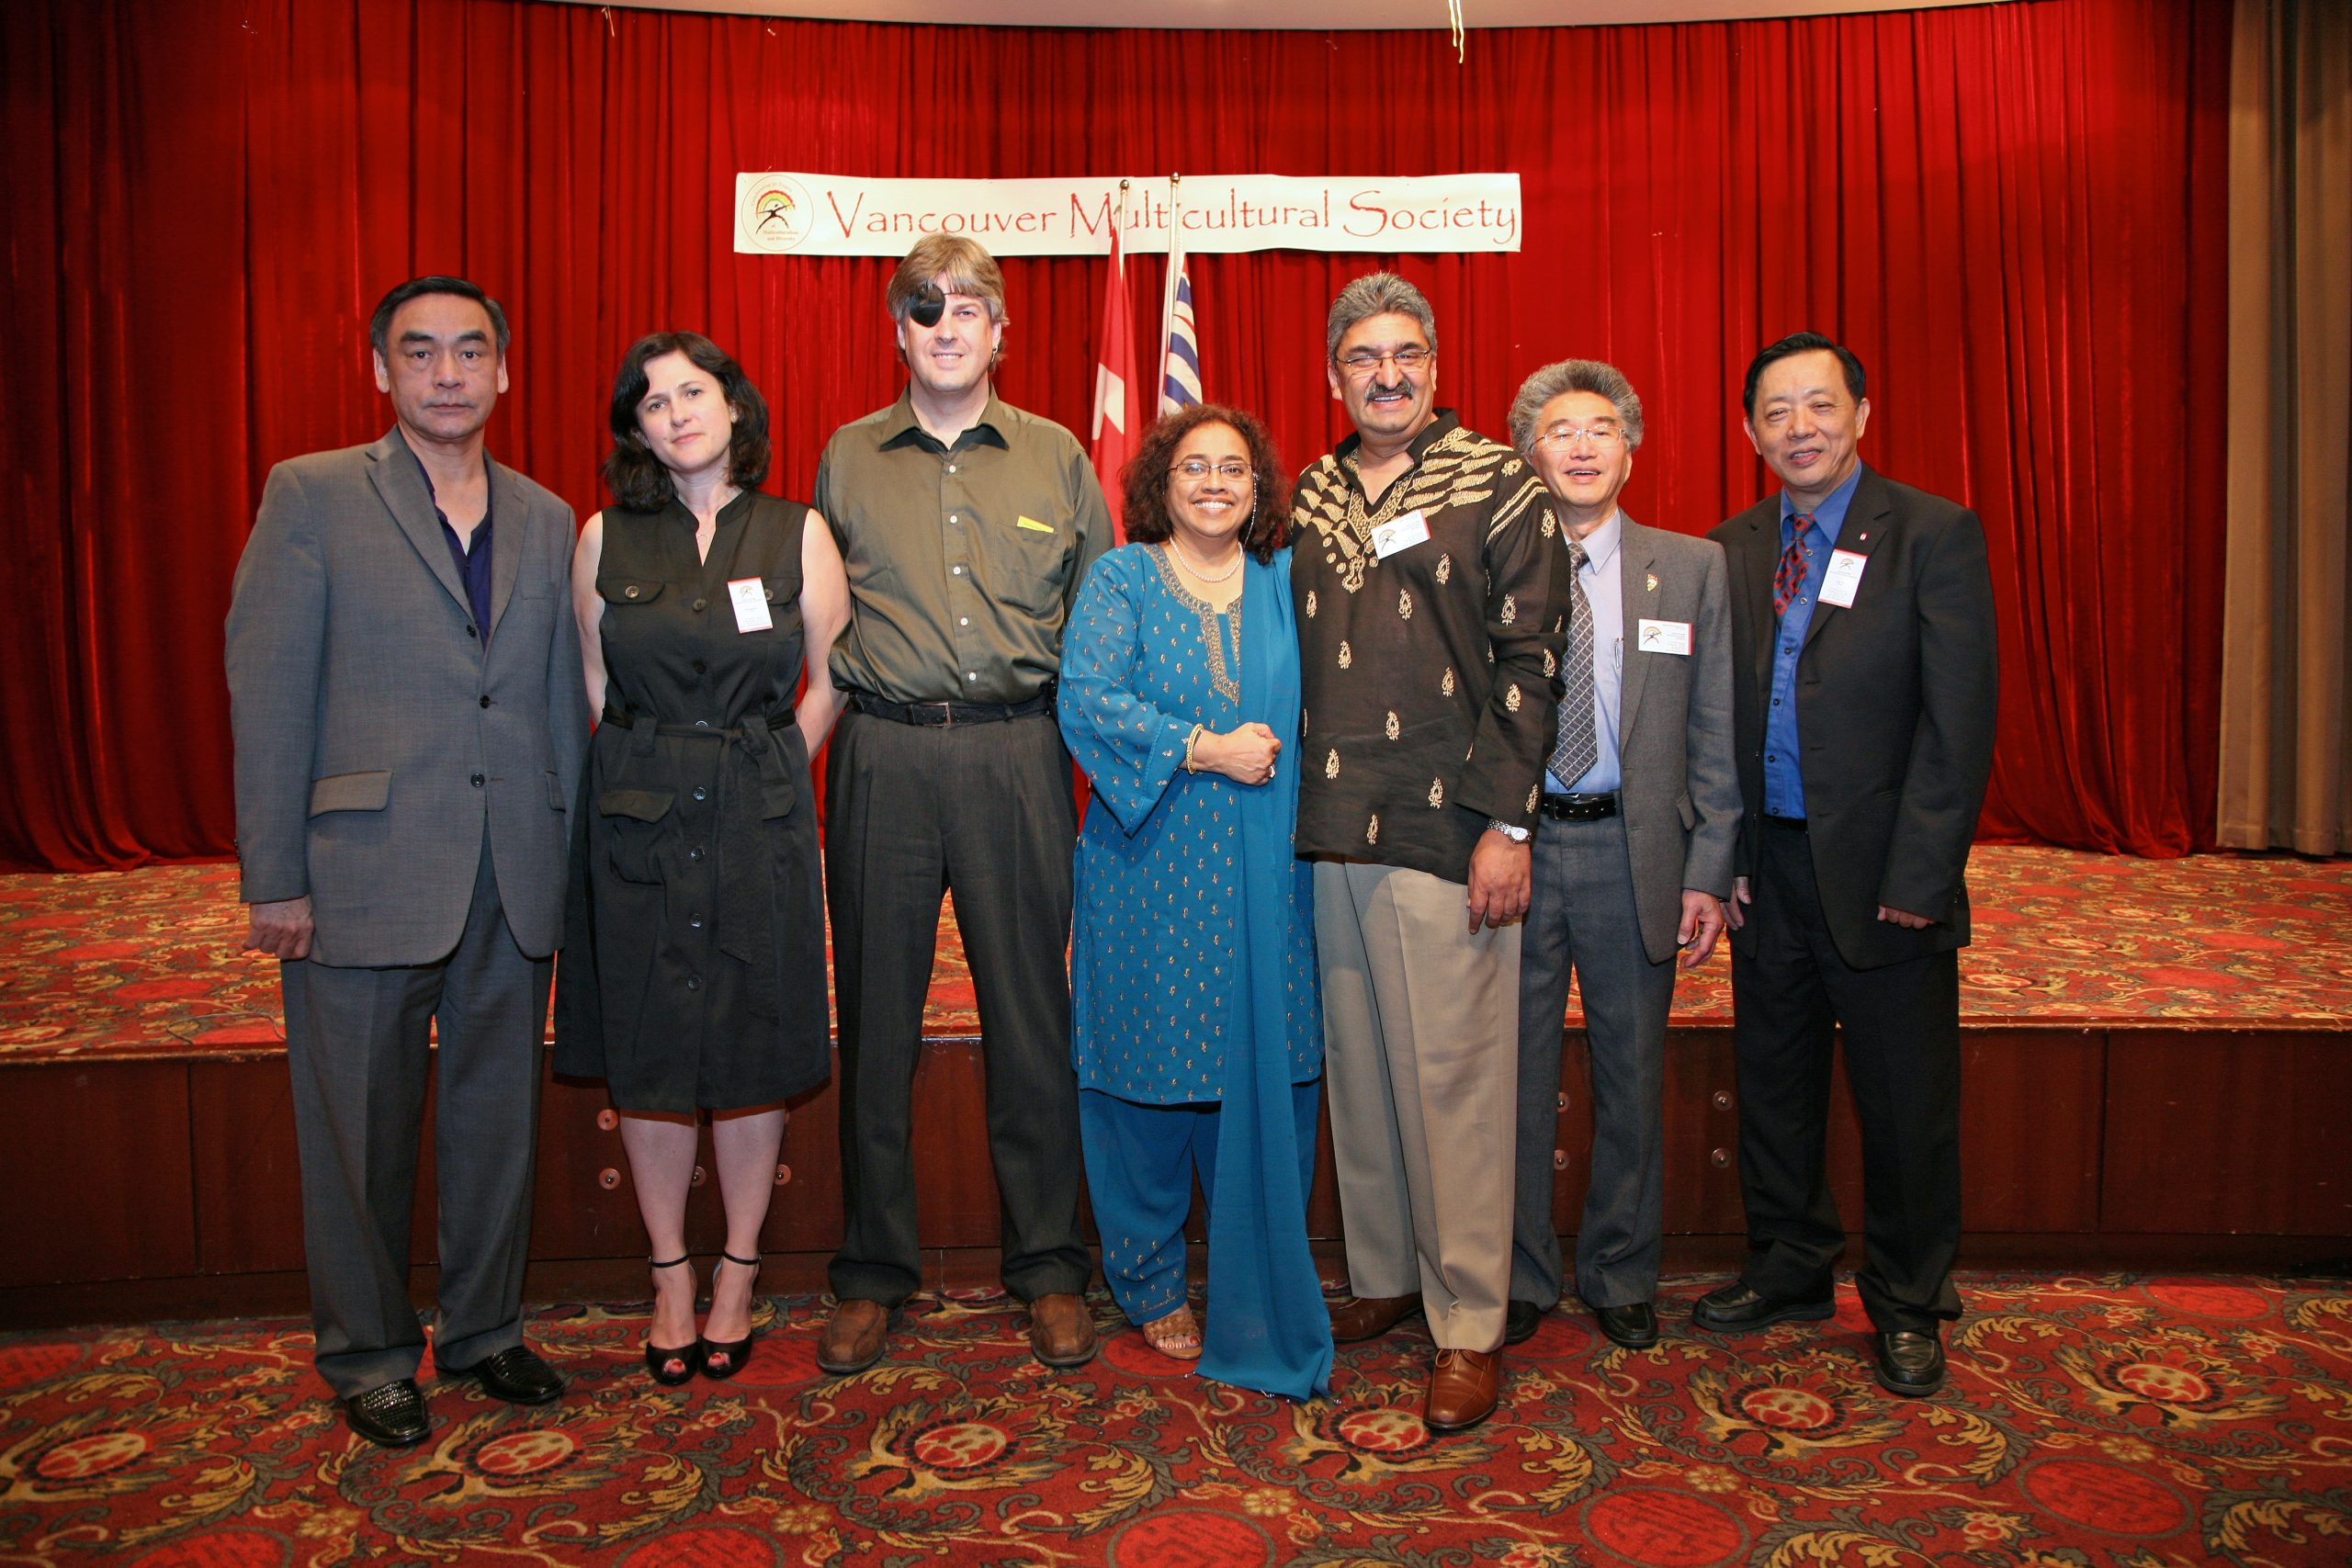 Vancouver Multicultural Society 2008